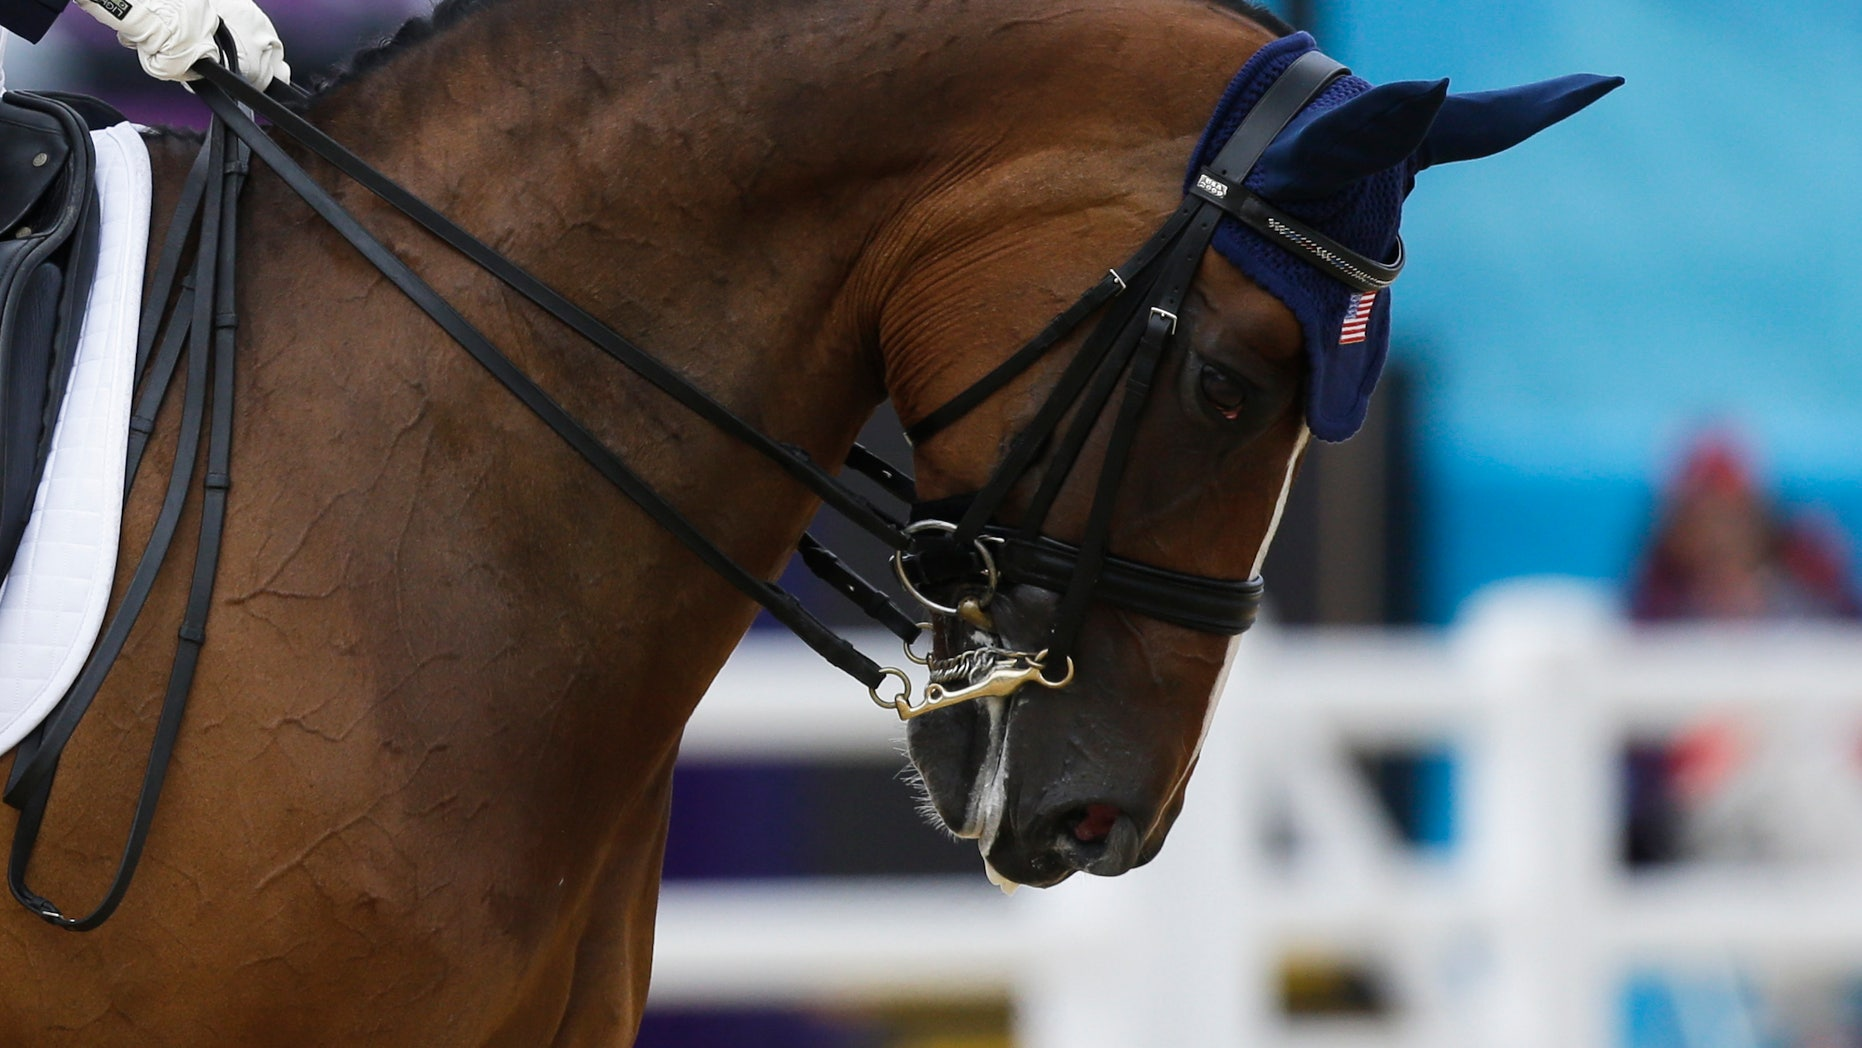 Aug. 2, 2012: The horse Rafalca is ridden by Jan Ebeling from United States during the equestrian dressage competition, at the 2012 Summer Olympics, in London.